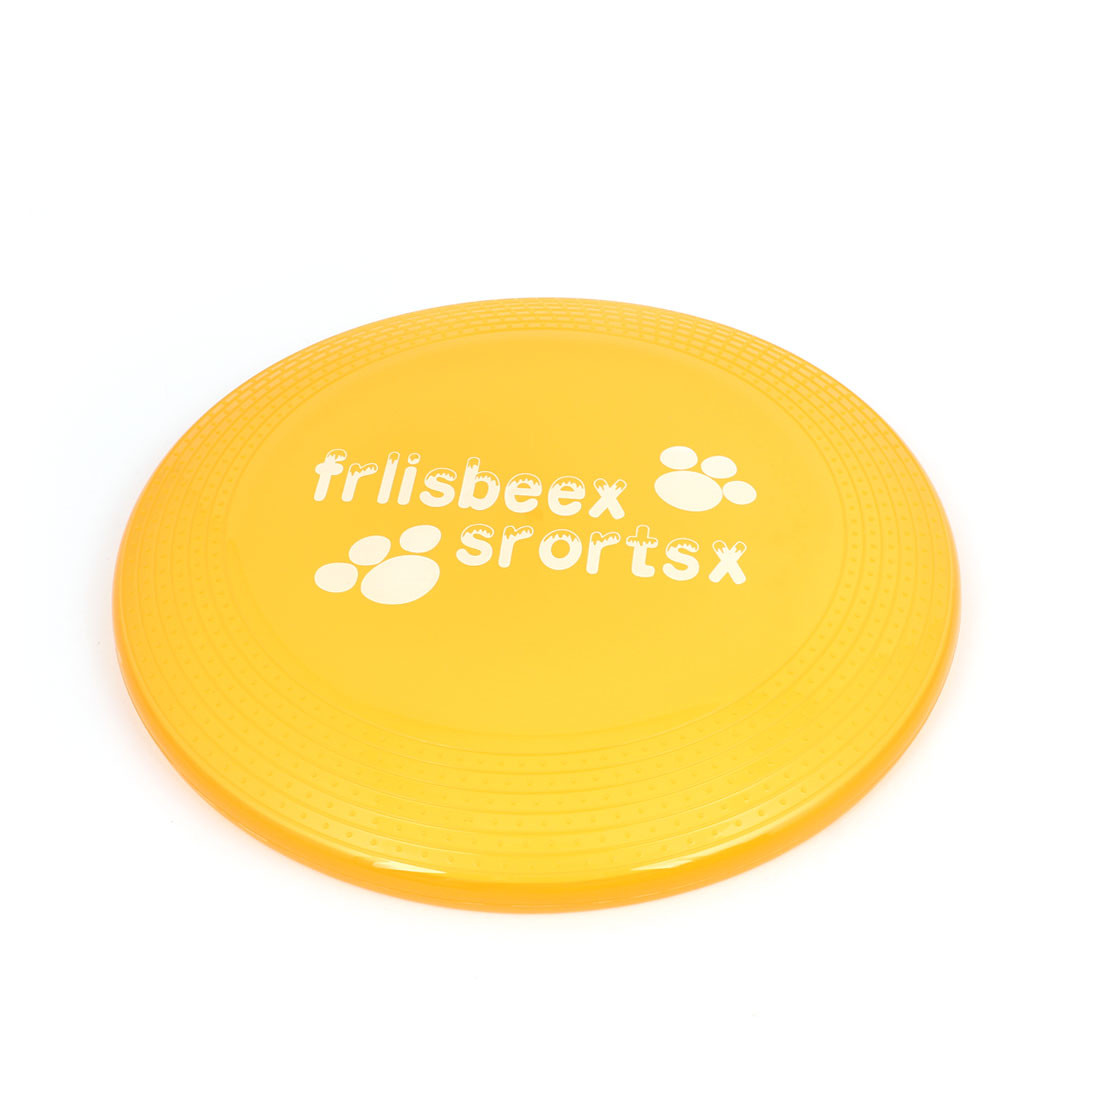 "Pet Cat Dog Yellow Plastic Round Shape Training Flyer Frisbee Toy 9"" Diameter"